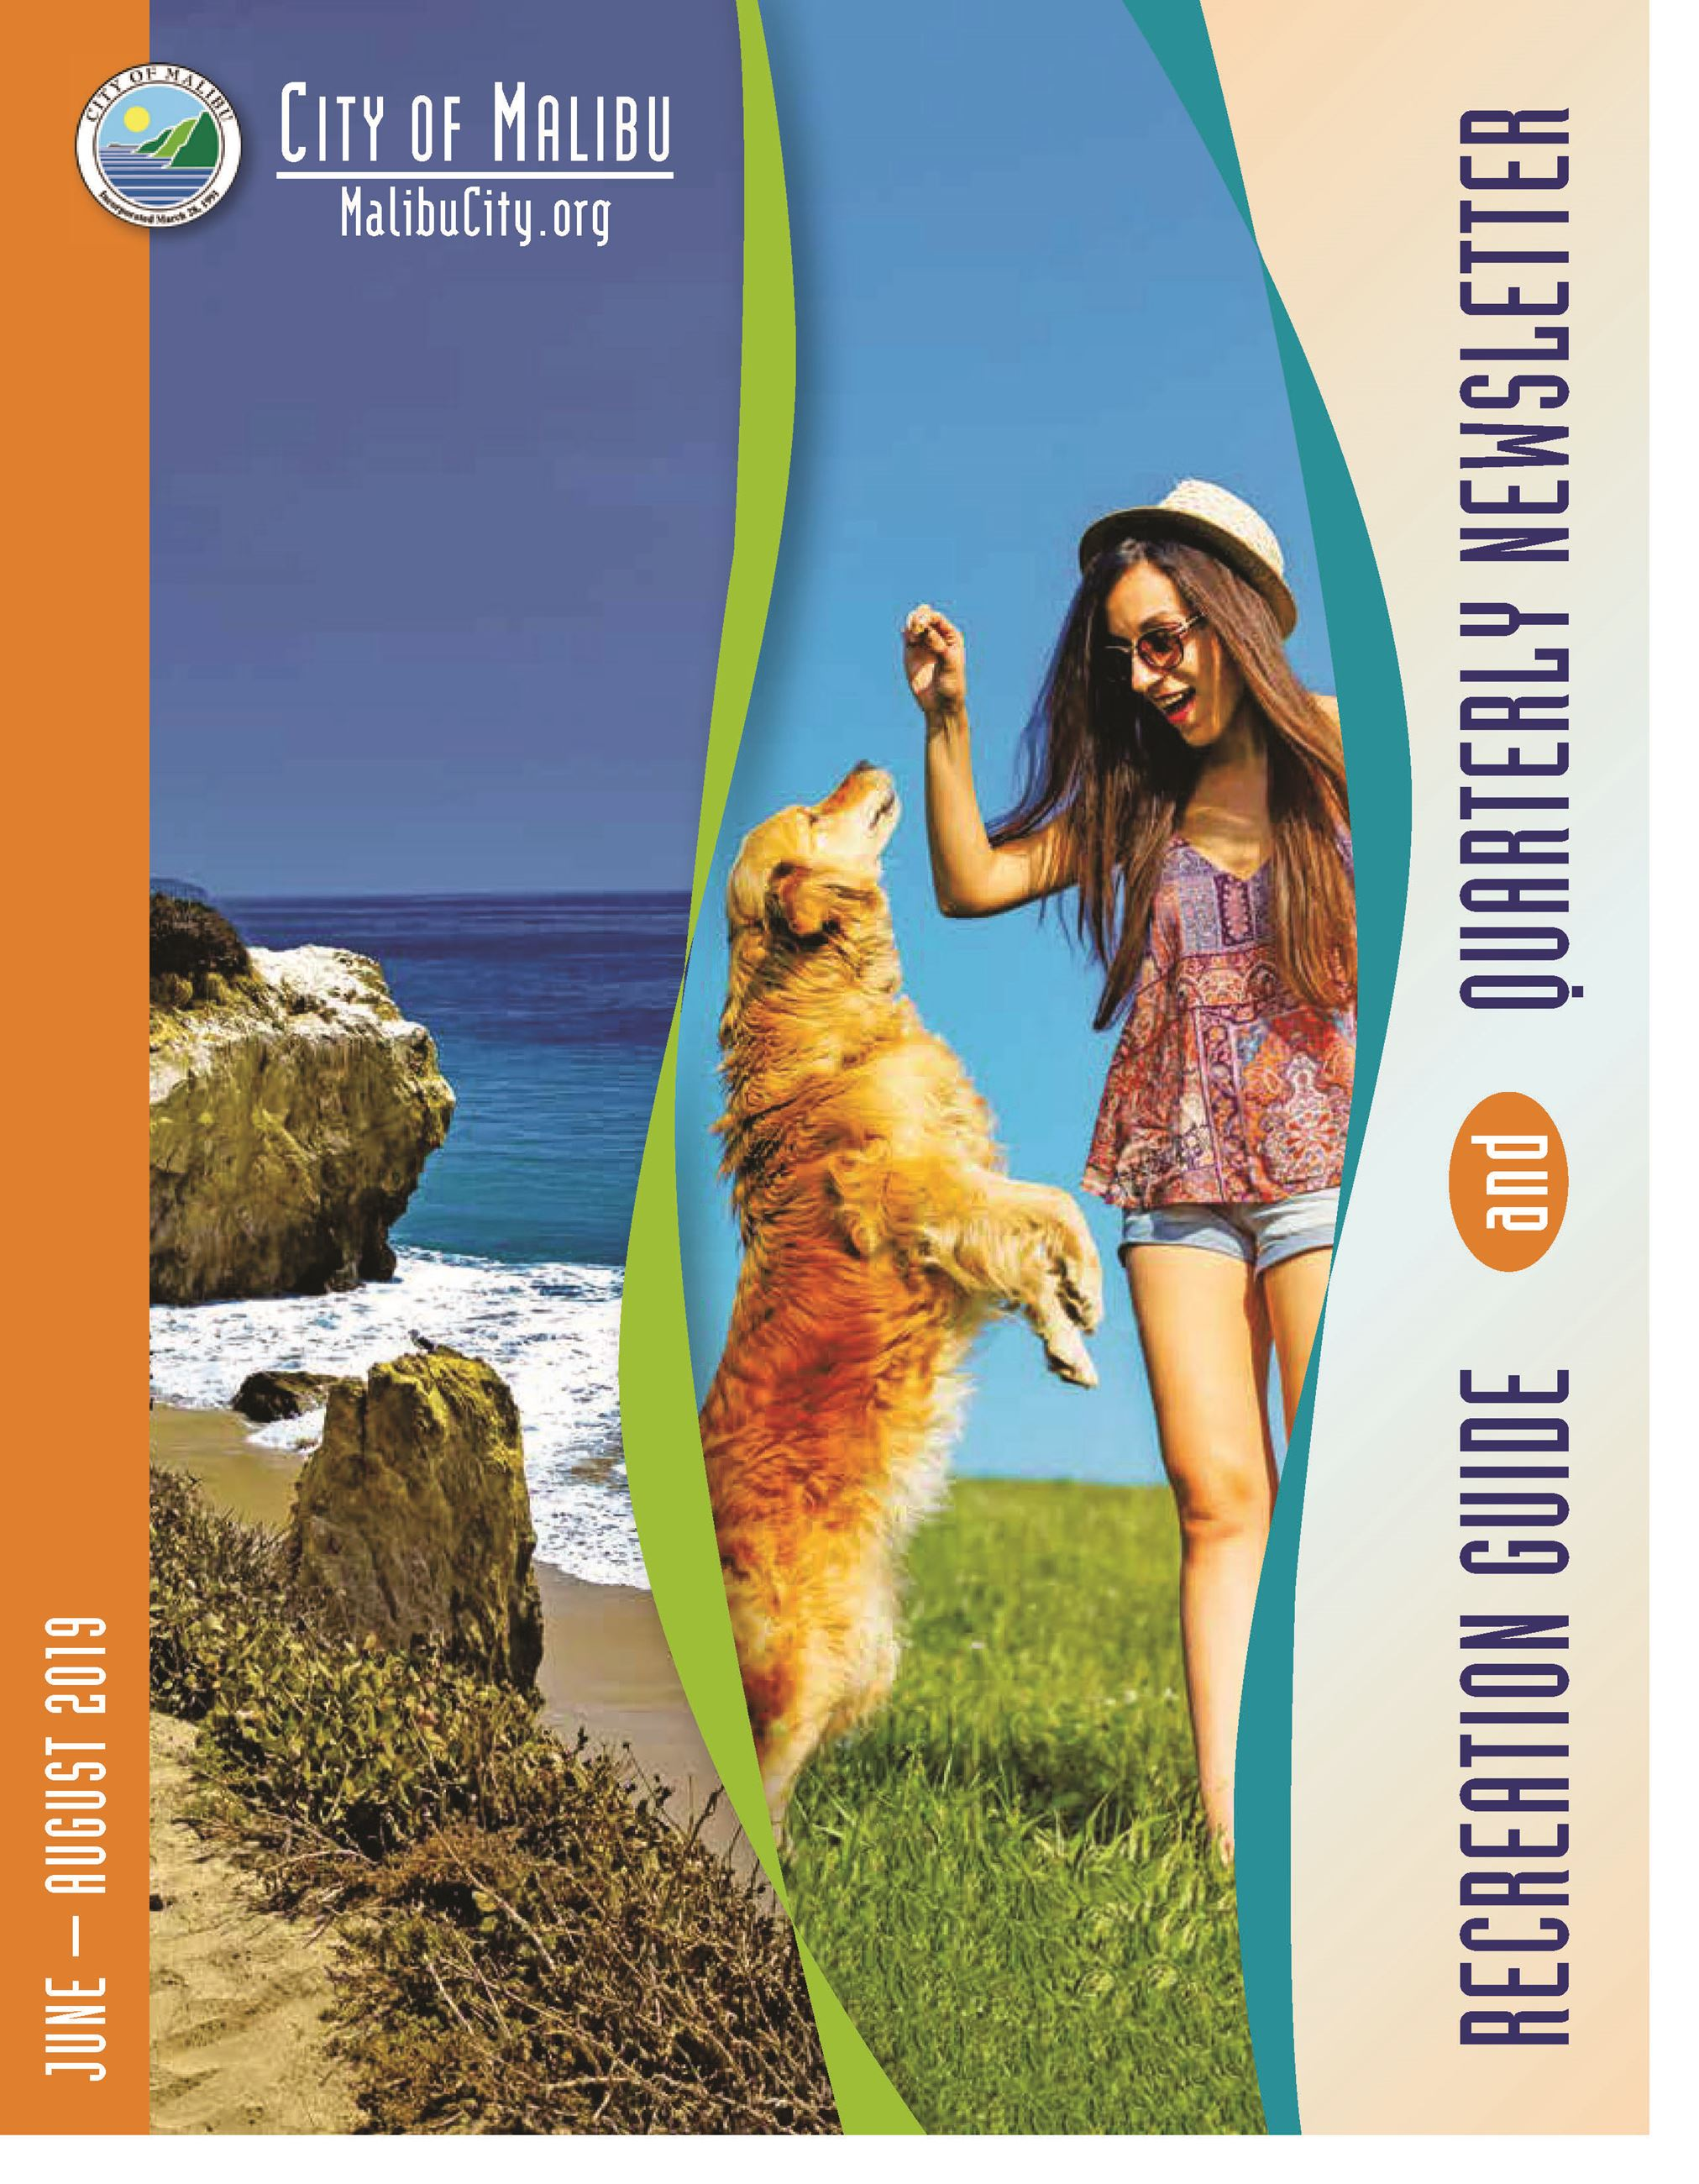 Summer 2019 Recreation Guide Cover Woman with dog